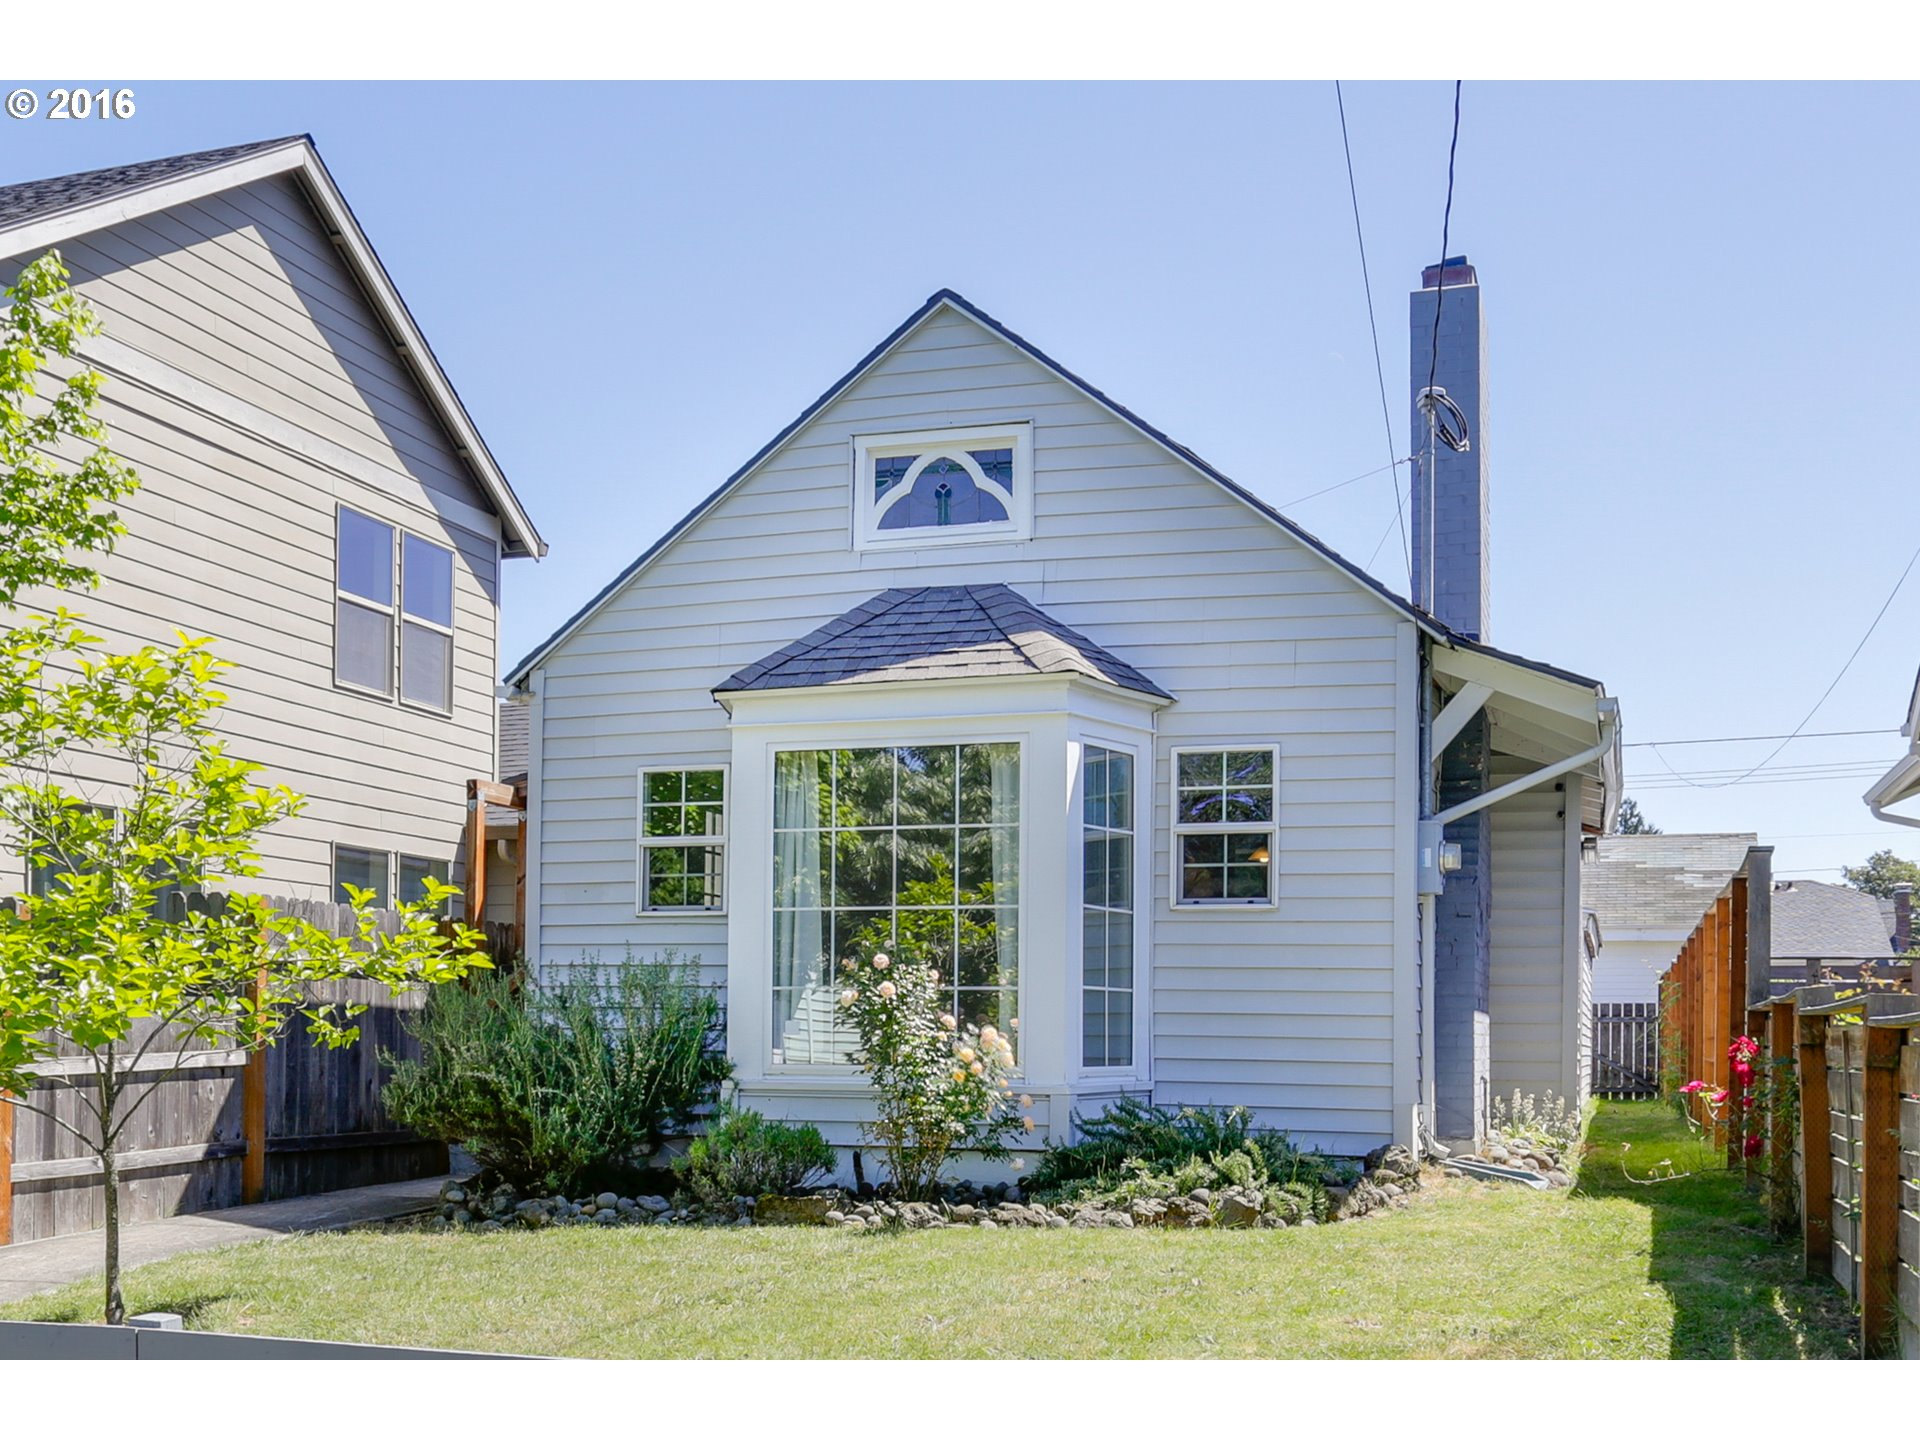 7604 N CHATHAM AVE, Portland, OR 97217